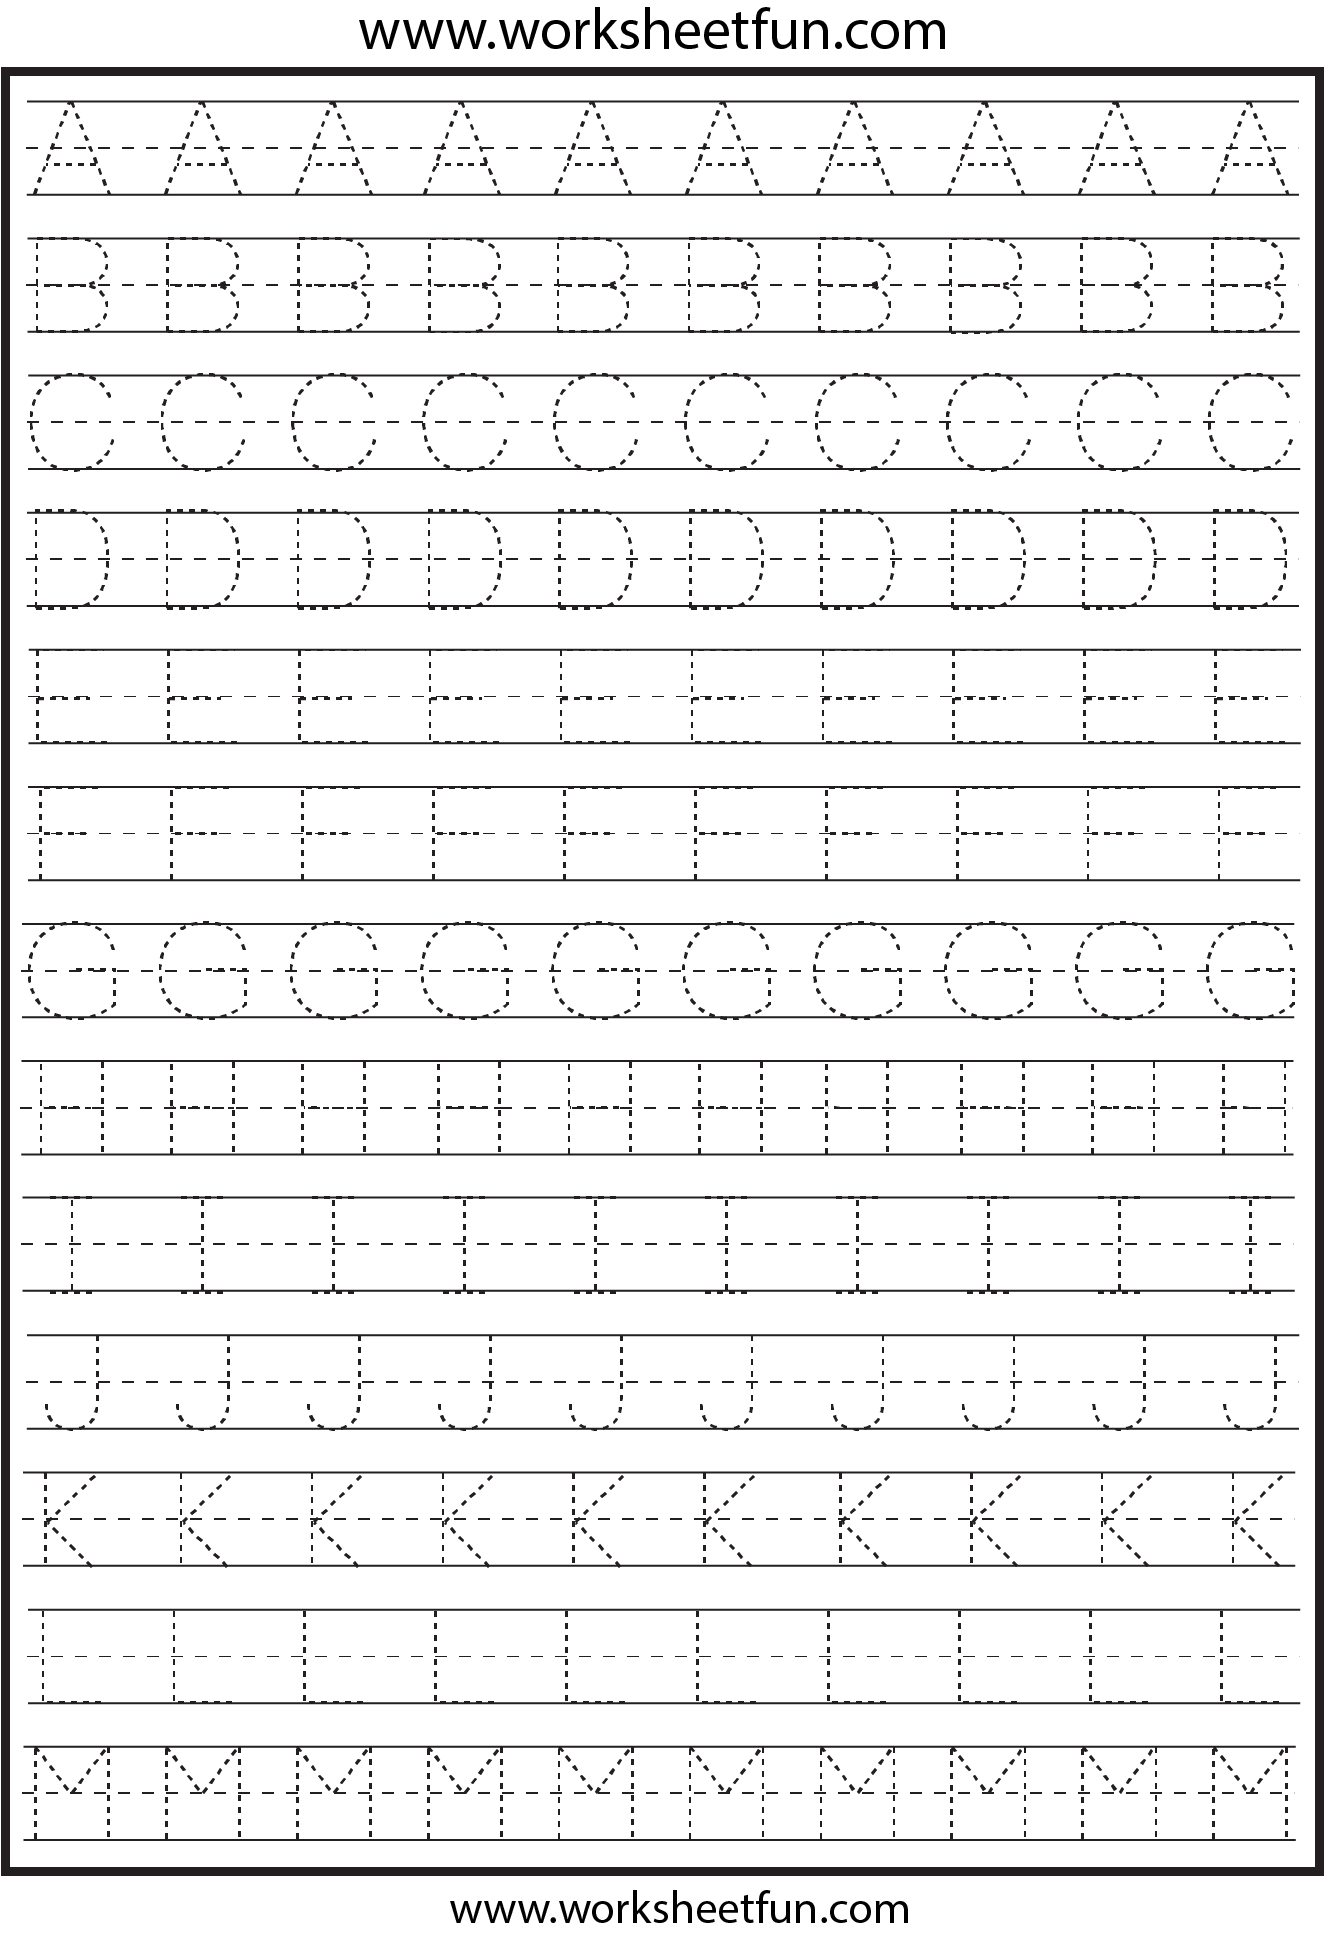 math worksheet : alphabet tracing worksheets for kindergarten photo album  : Kindergarten Tracing Worksheets